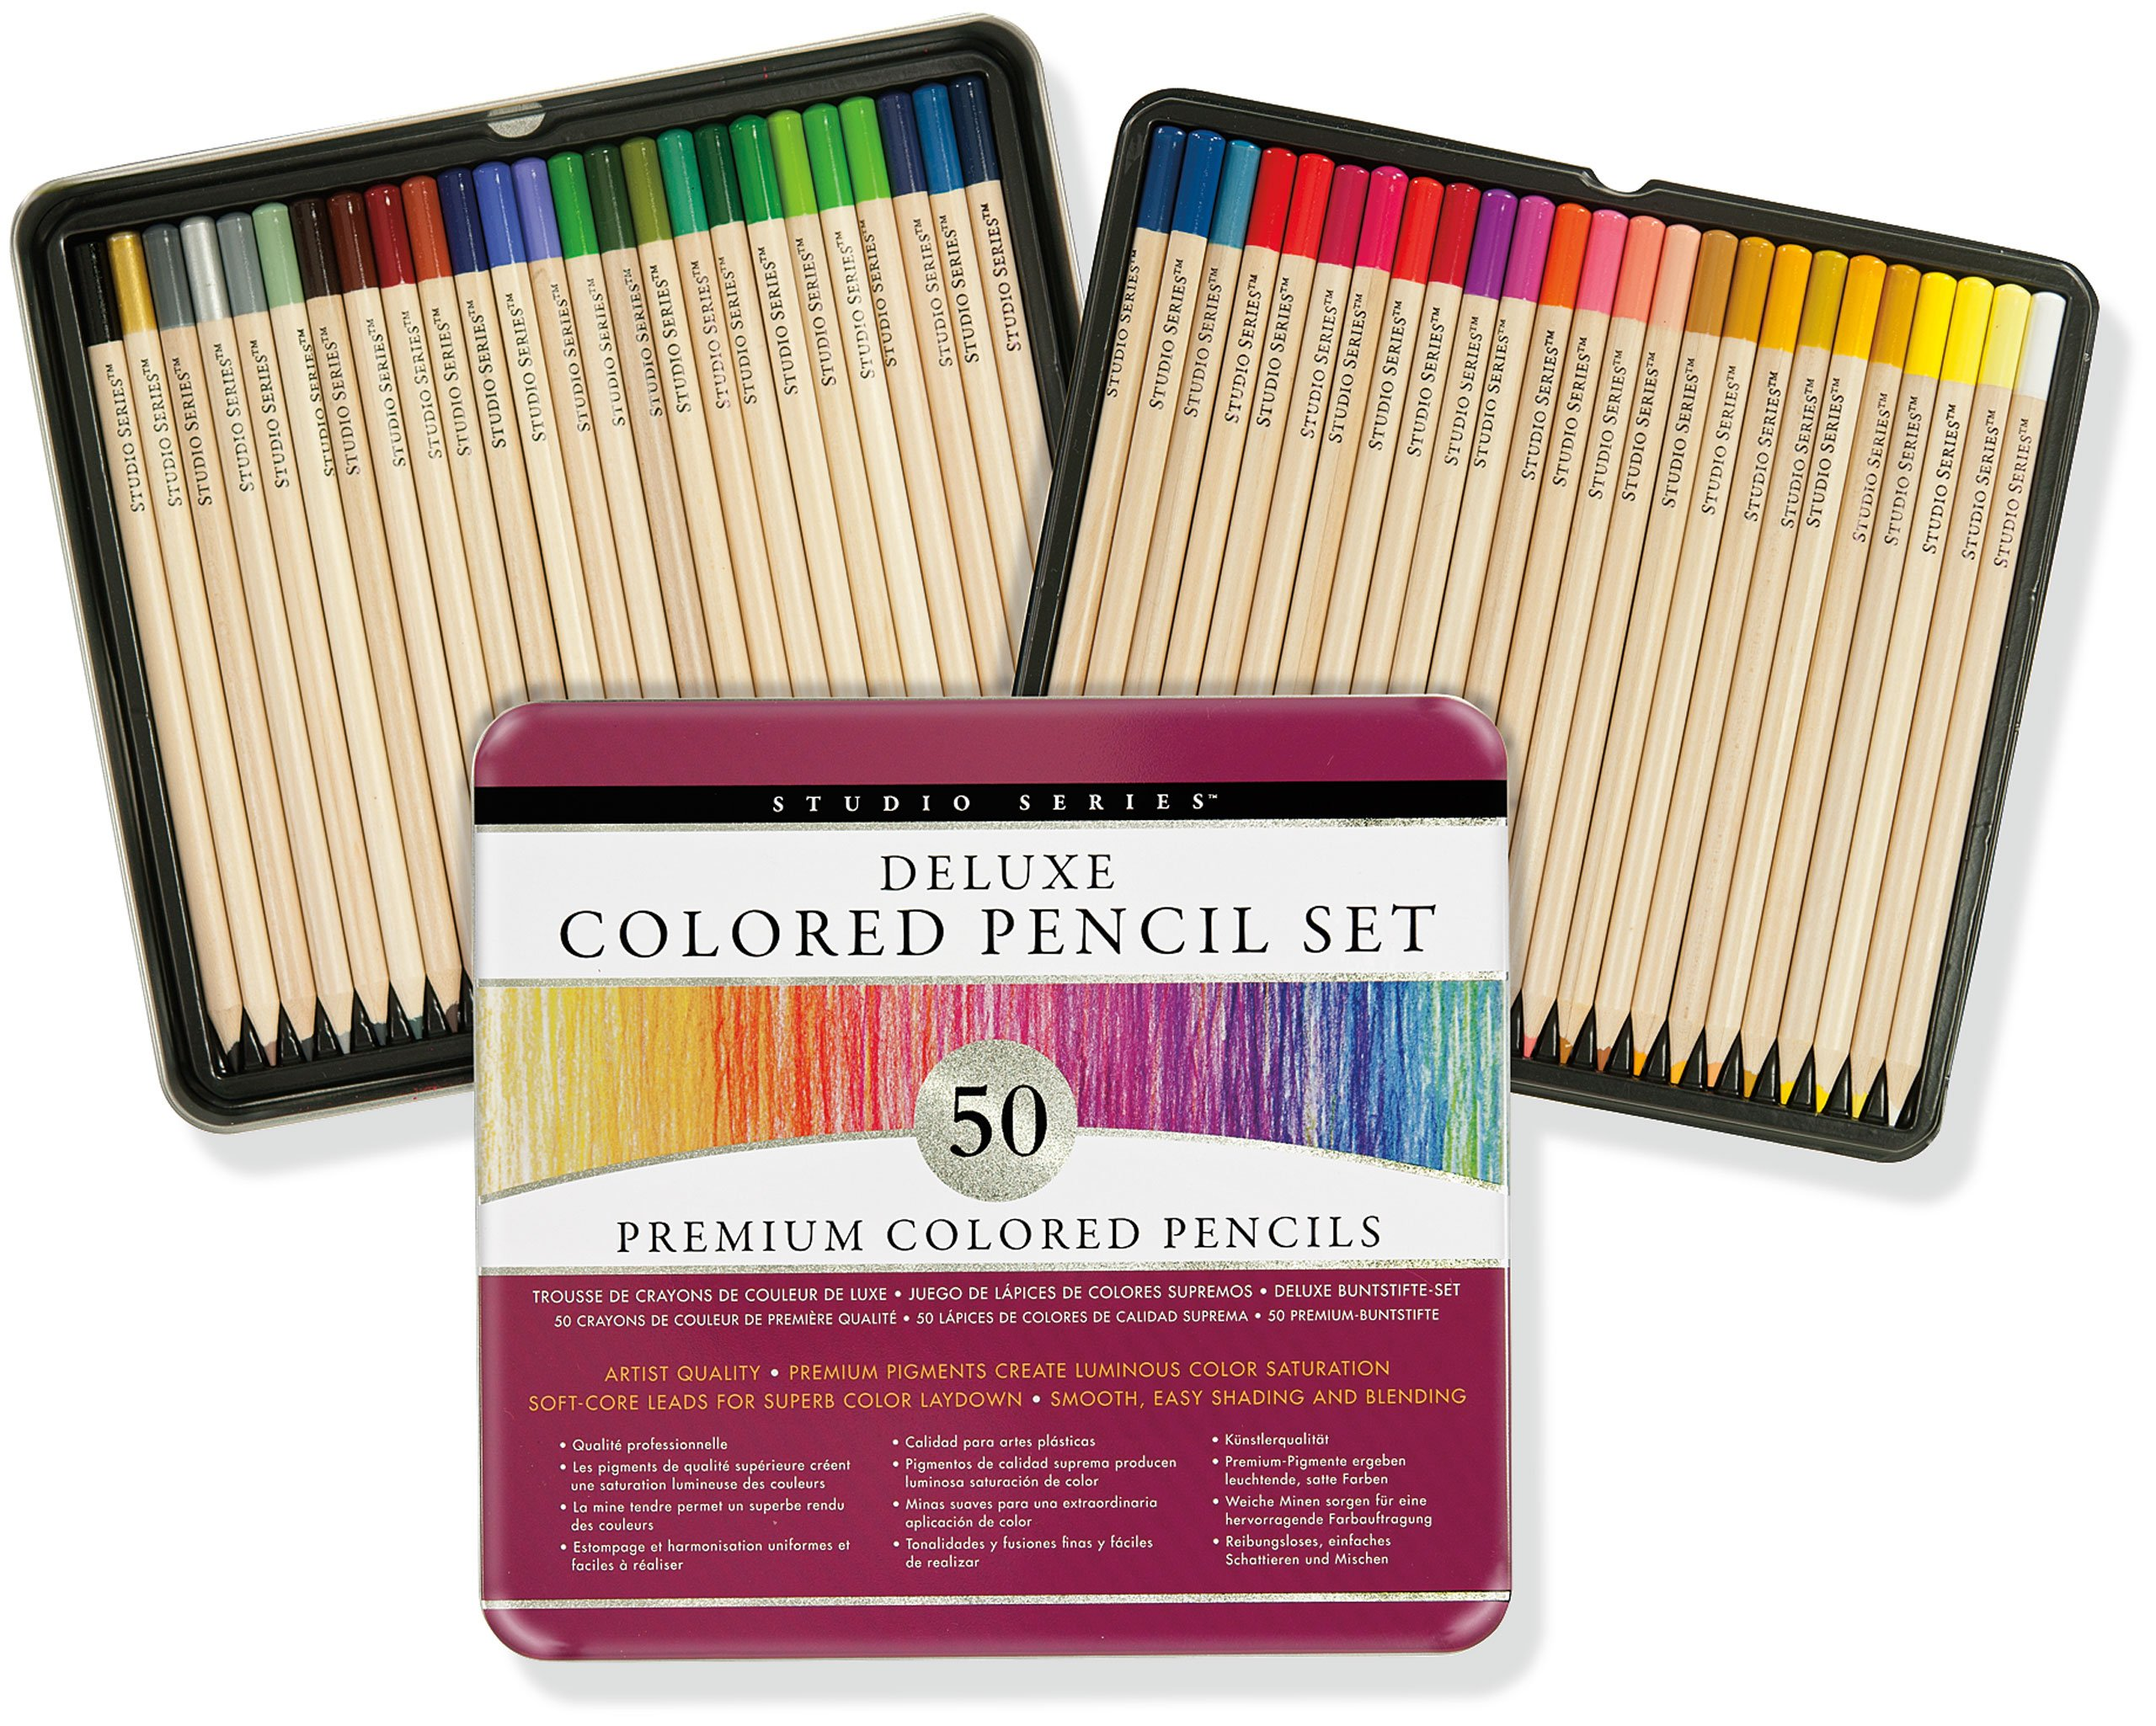 Studio Deluxe Colored Pencil Set product image